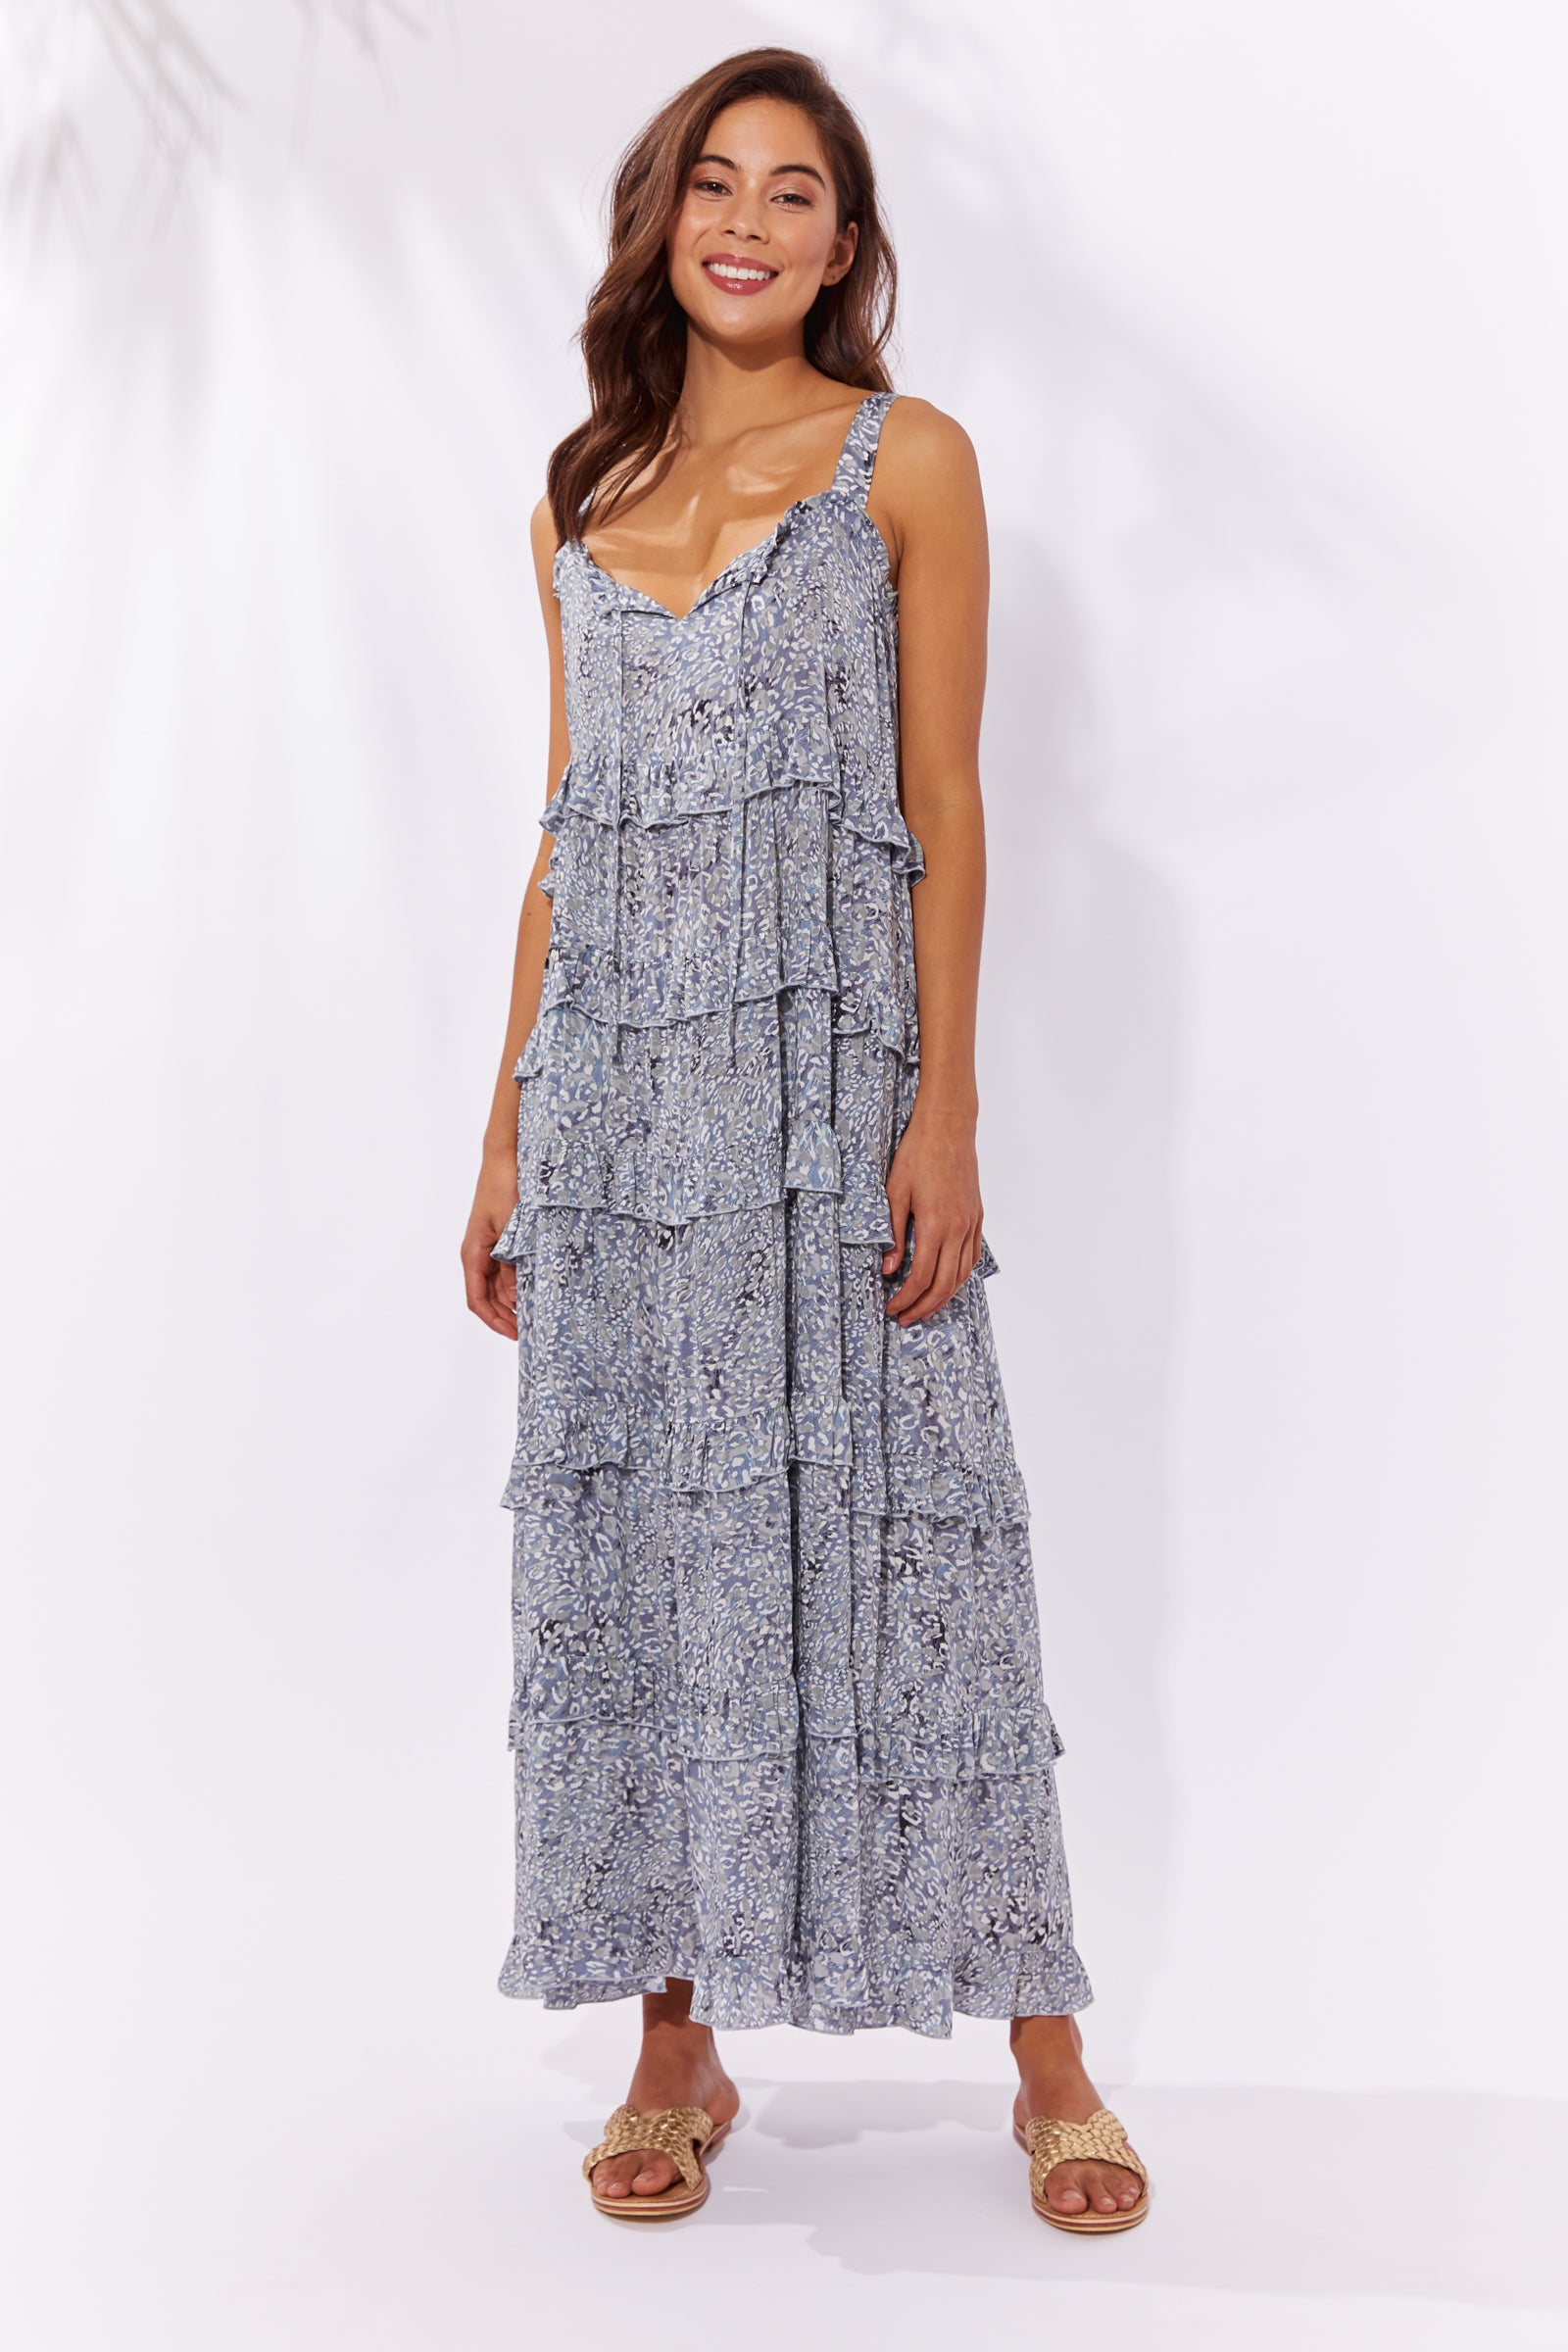 Havana Frill Maxi - Havana Blue - The Haven Co